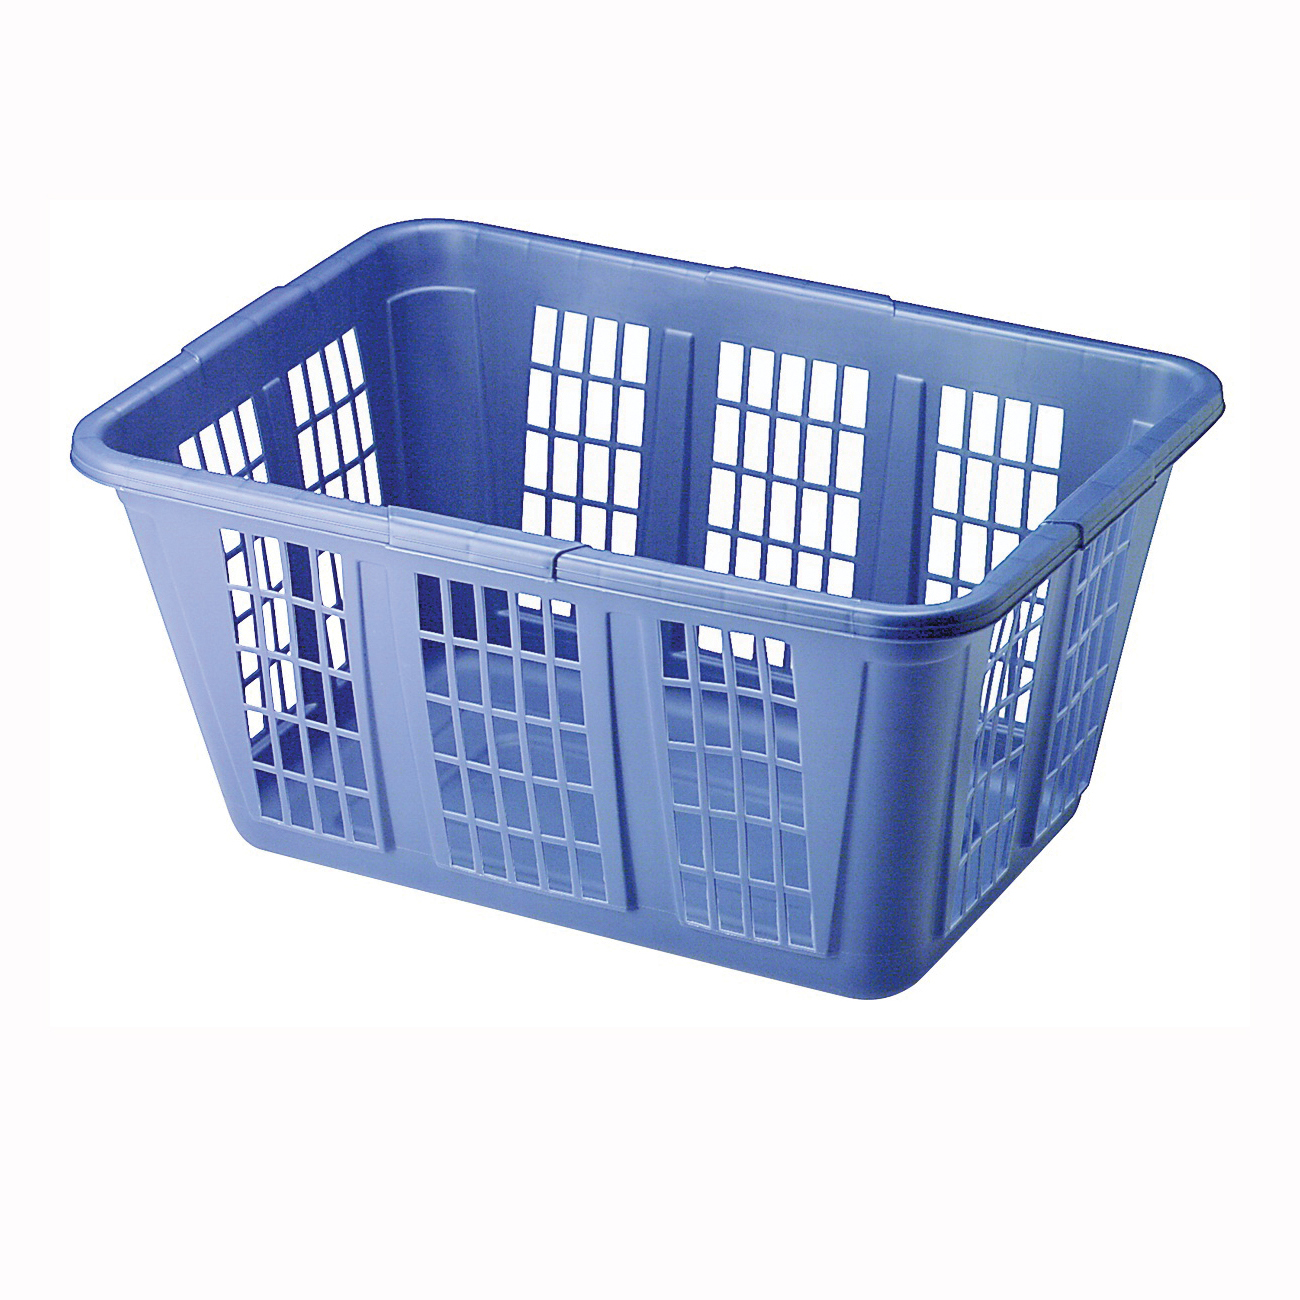 Picture of Rubbermaid FG296585ROYBL Laundry Basket, 1.6 bu Capacity, Plastic, Royal Blue, 1-Compartment